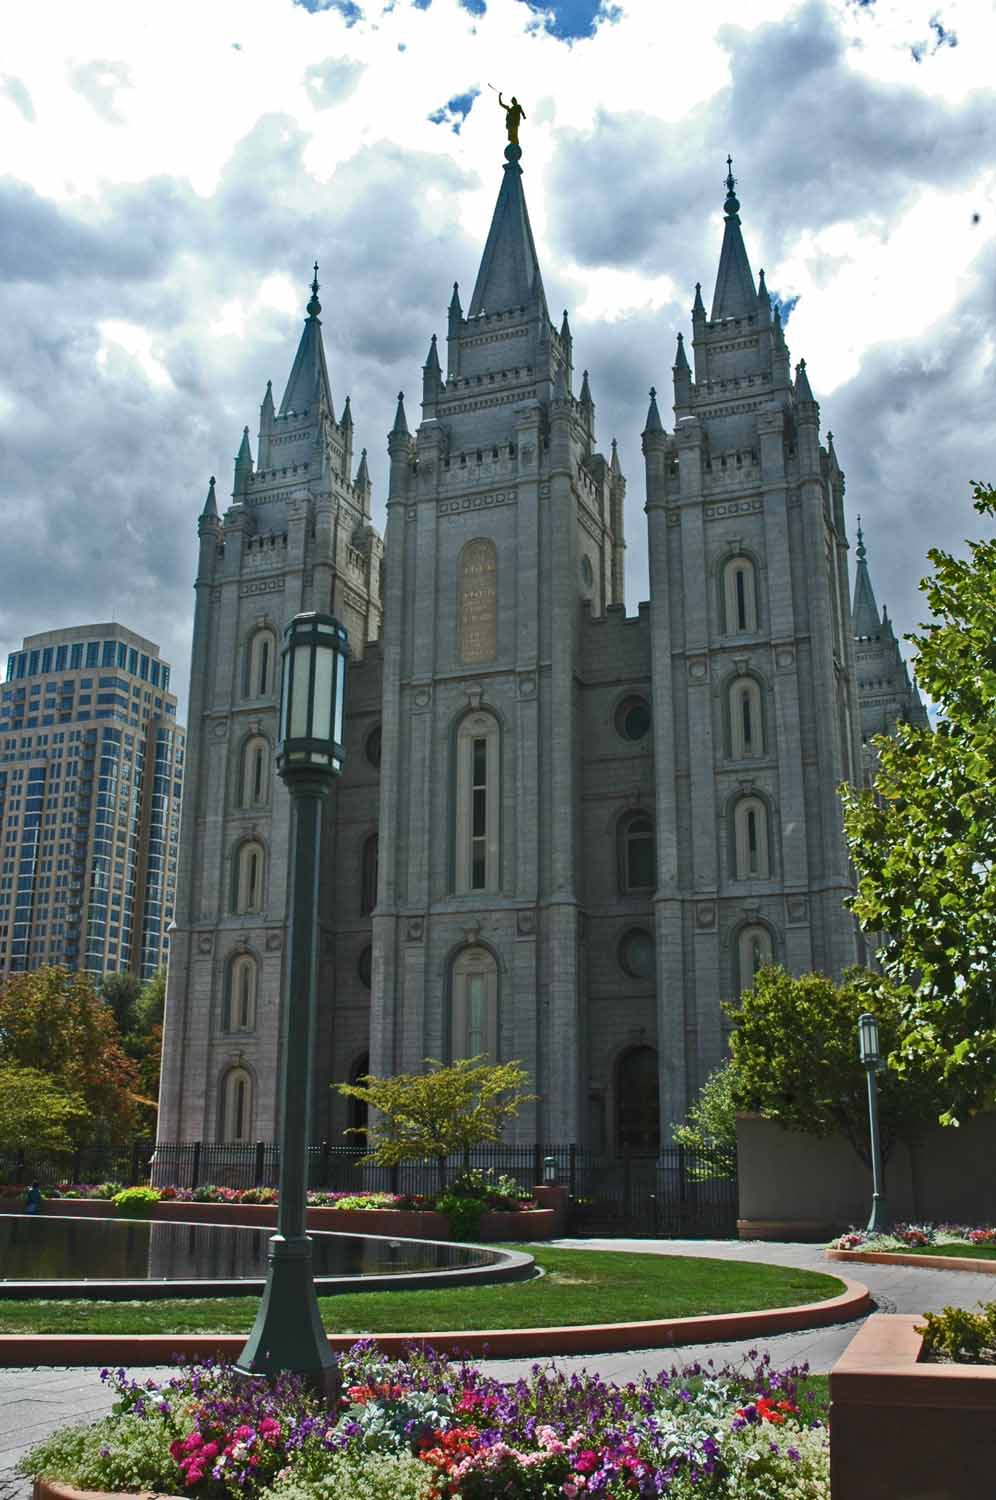 South Utah was an adventure...here we are in Temple Square in Salt Lake